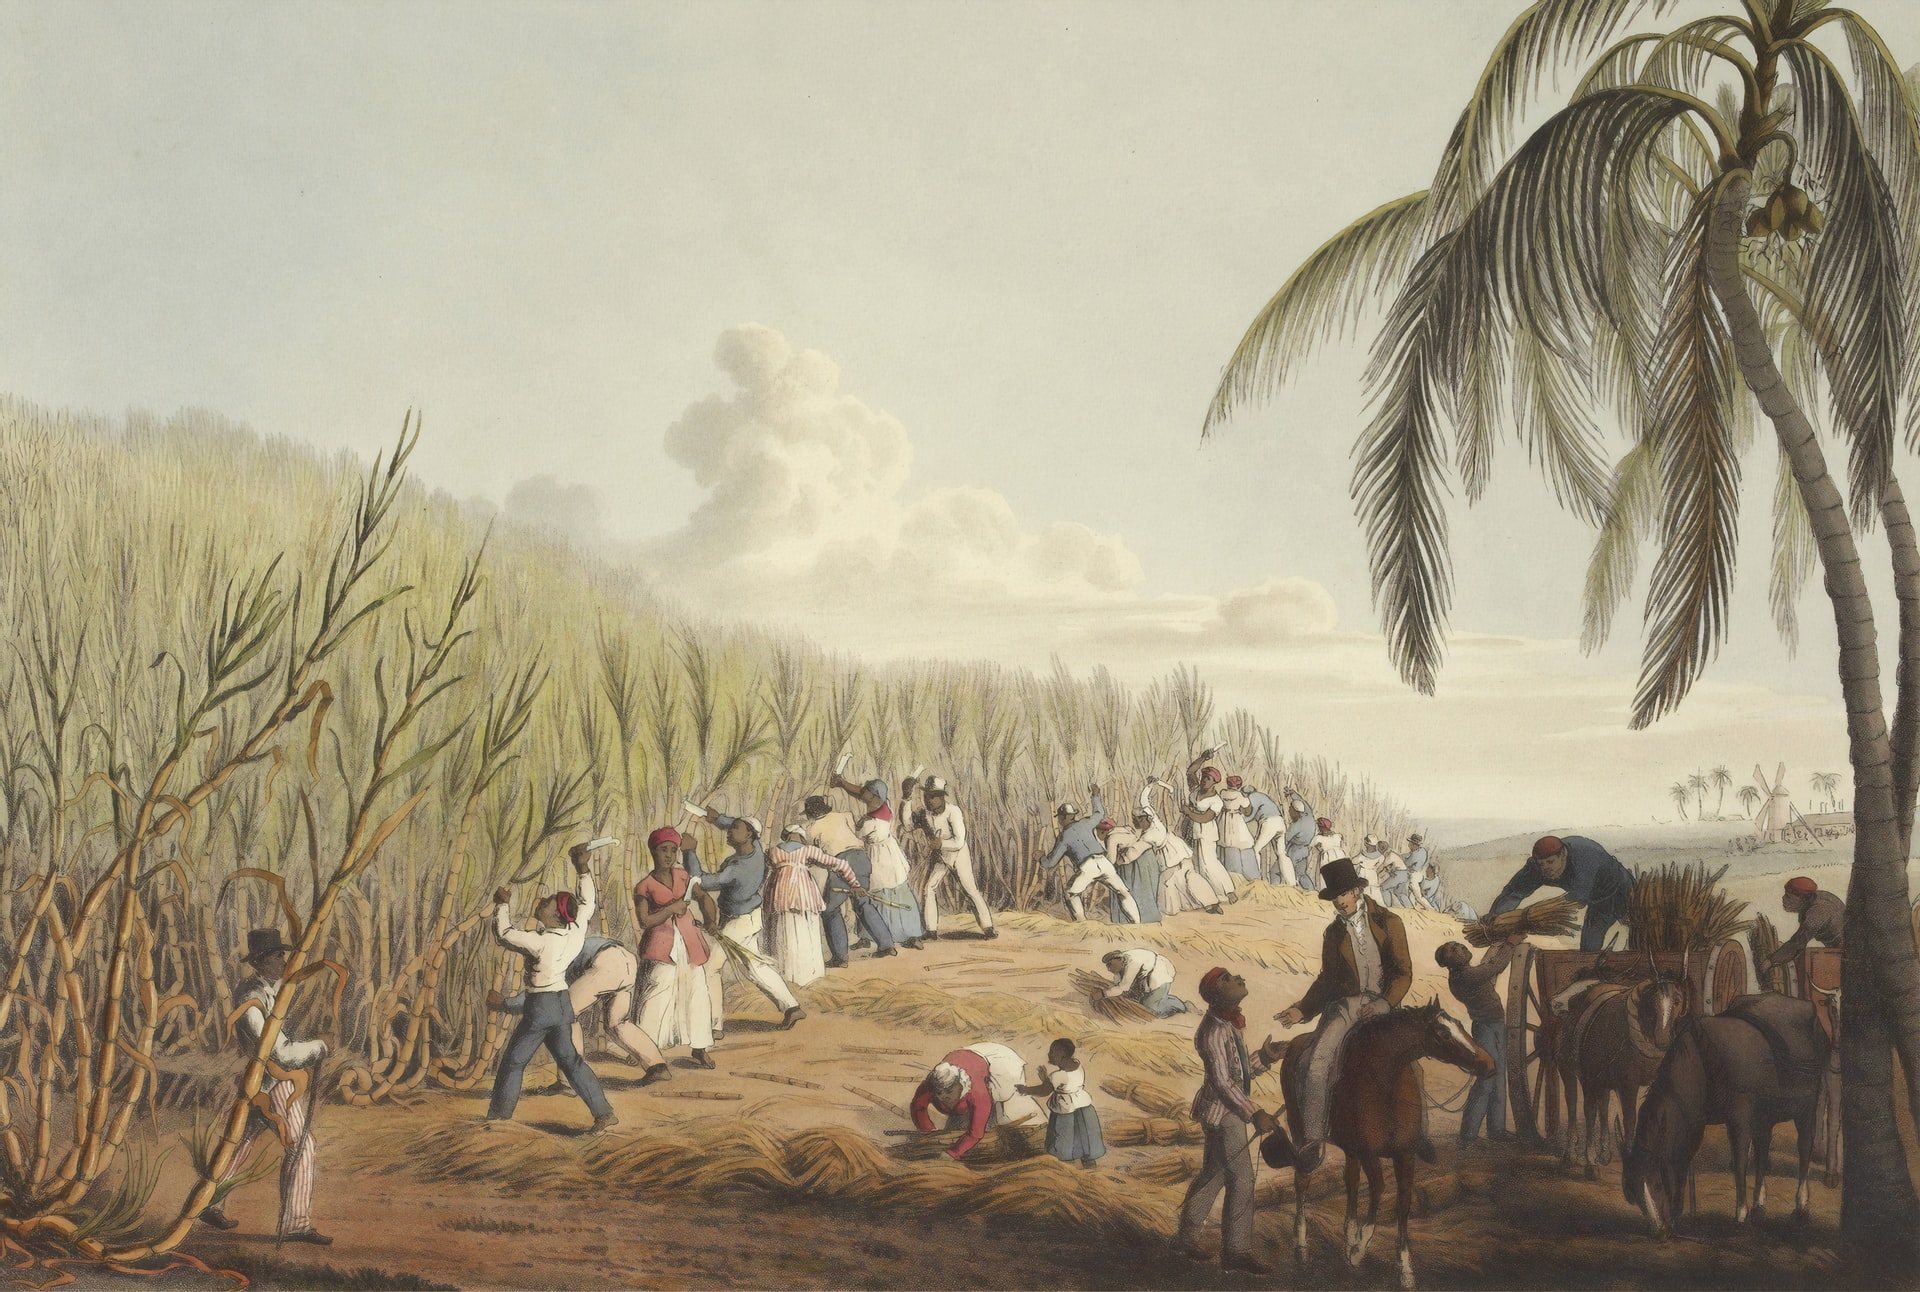 Painting of a plantation with black people reaping the harvest